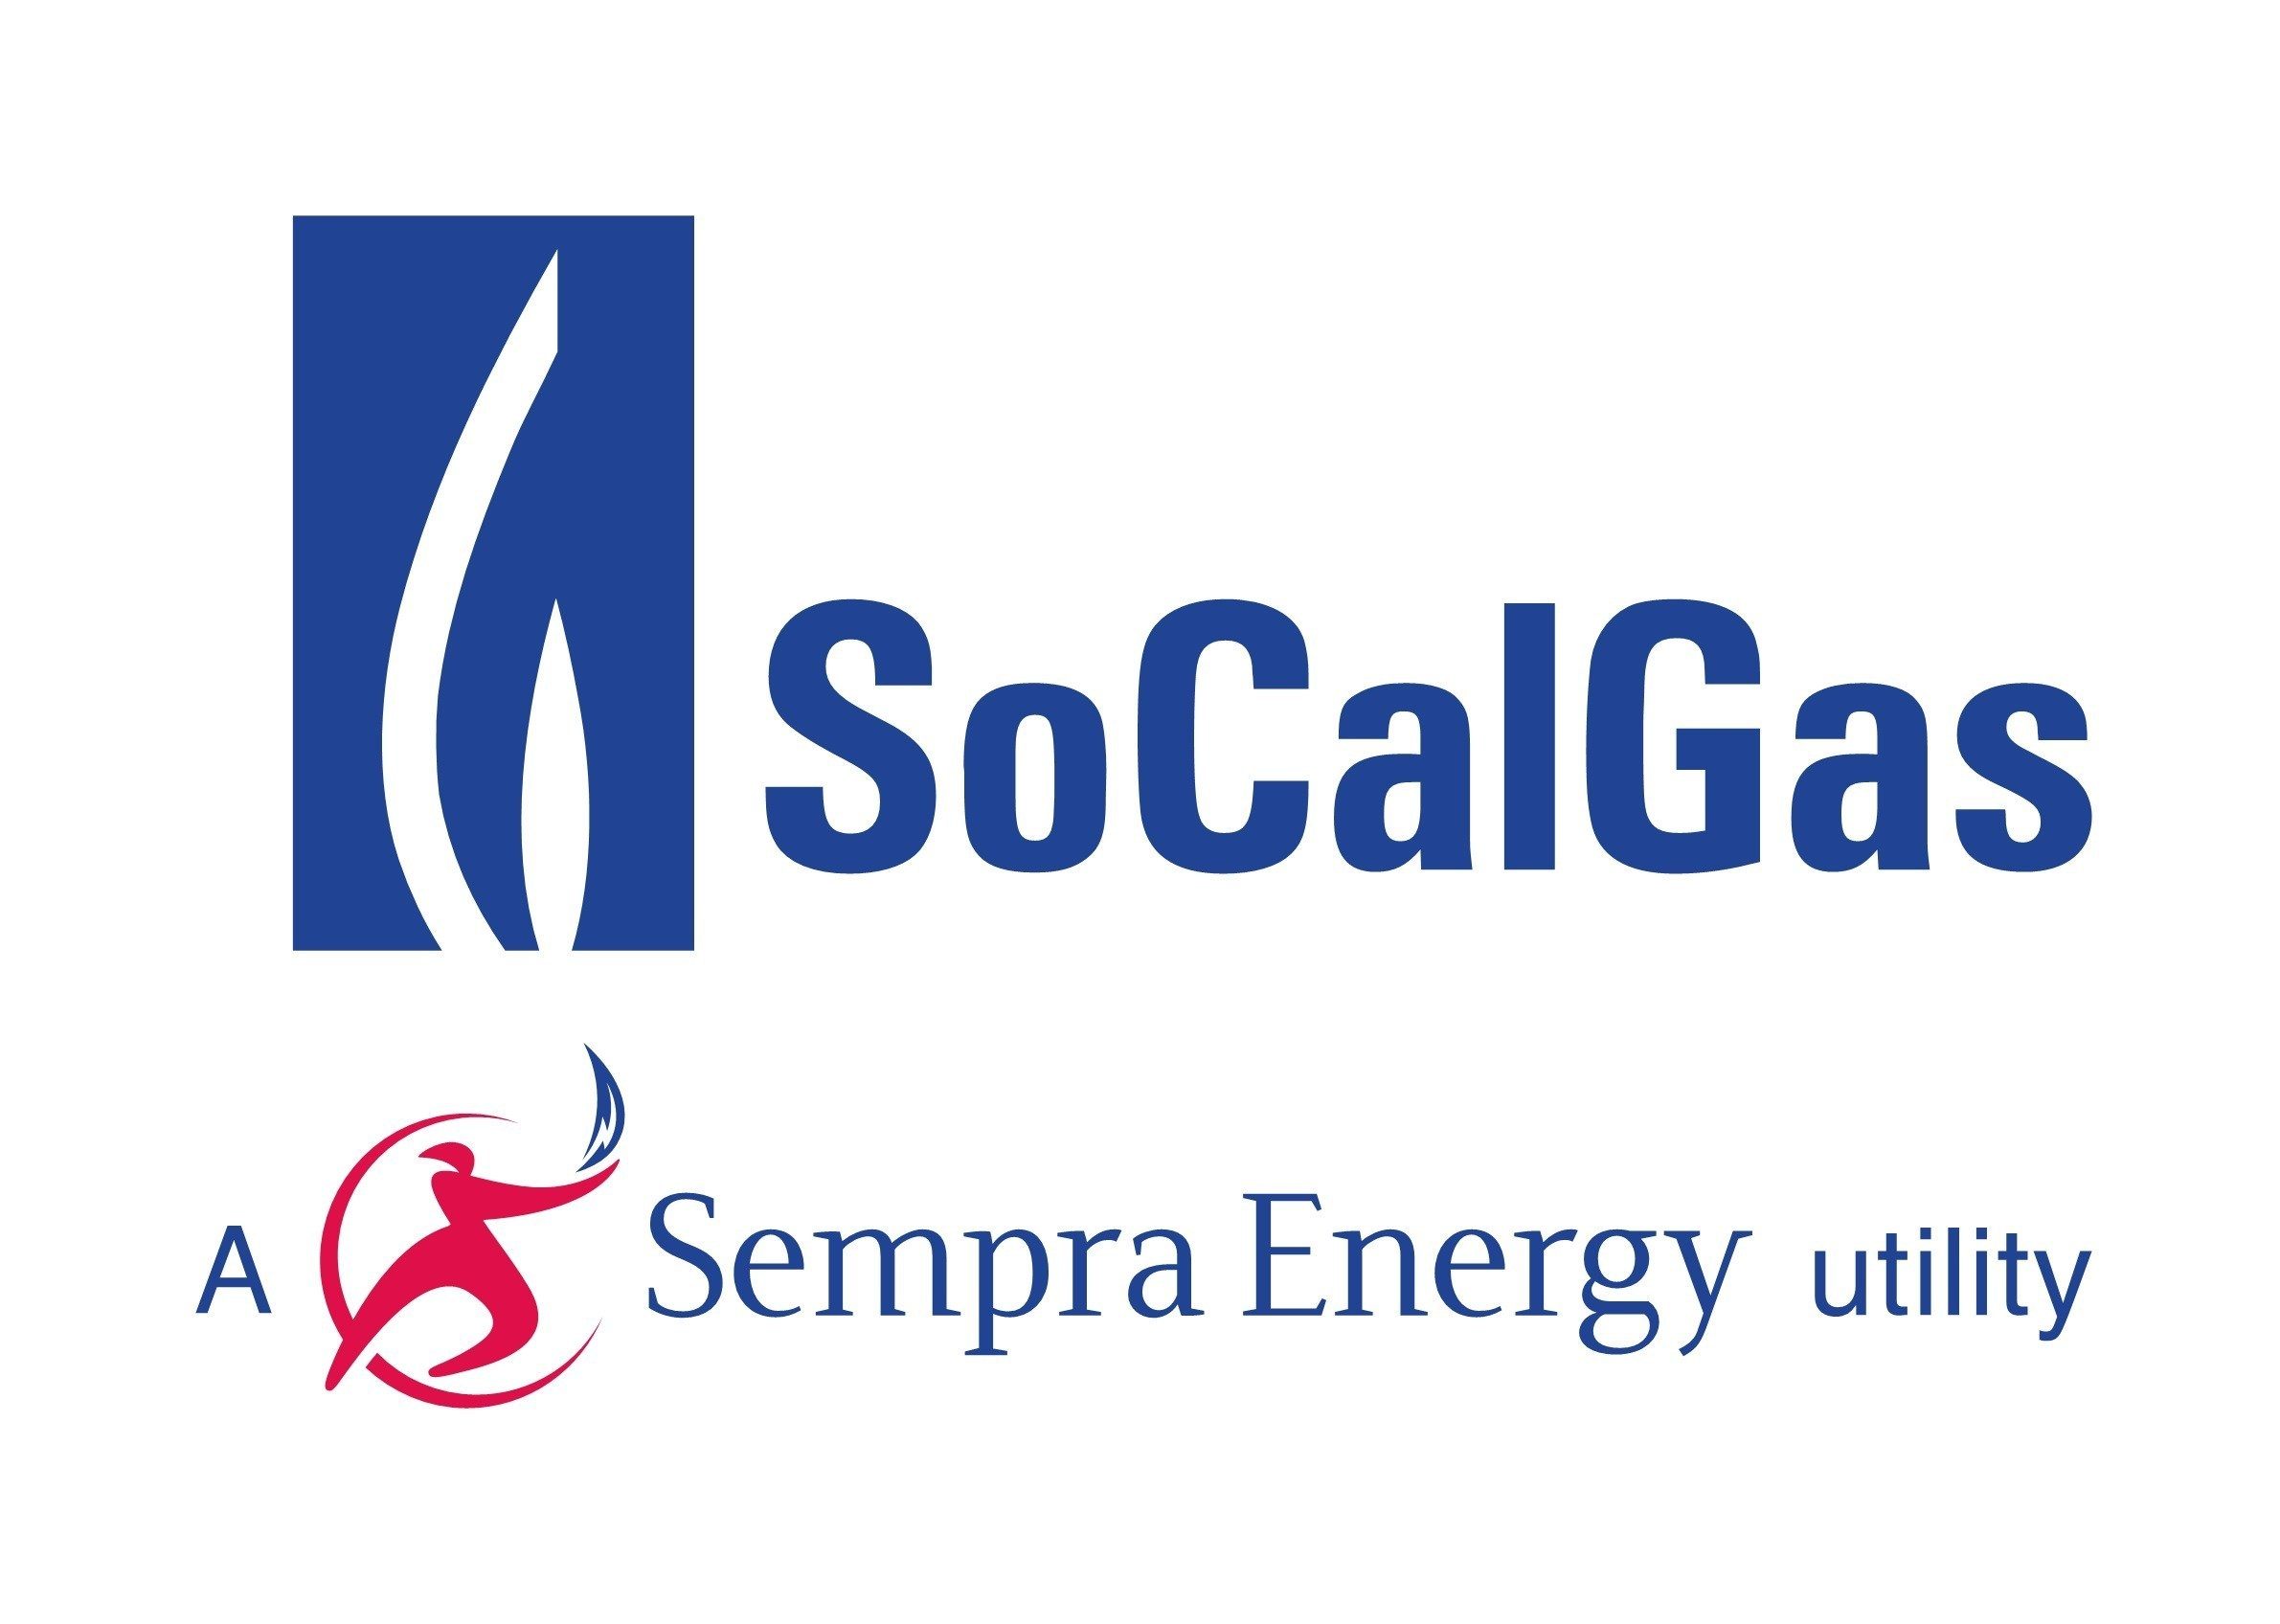 Southern California Gas Co. is the nation's largest natural gas distribution utility, providing safe and reliable energy to 20.9 million consumers through nearly 5.8 million meters in more than 500 communities. The company's service territory encompasses approximately 20,000 square miles throughout Central and Southern California, from Visalia to the Mexican border. Southern California Gas Co. is a regulated subsidiary of Sempra Energy. (PRNewsFoto/Southern California Gas Company)